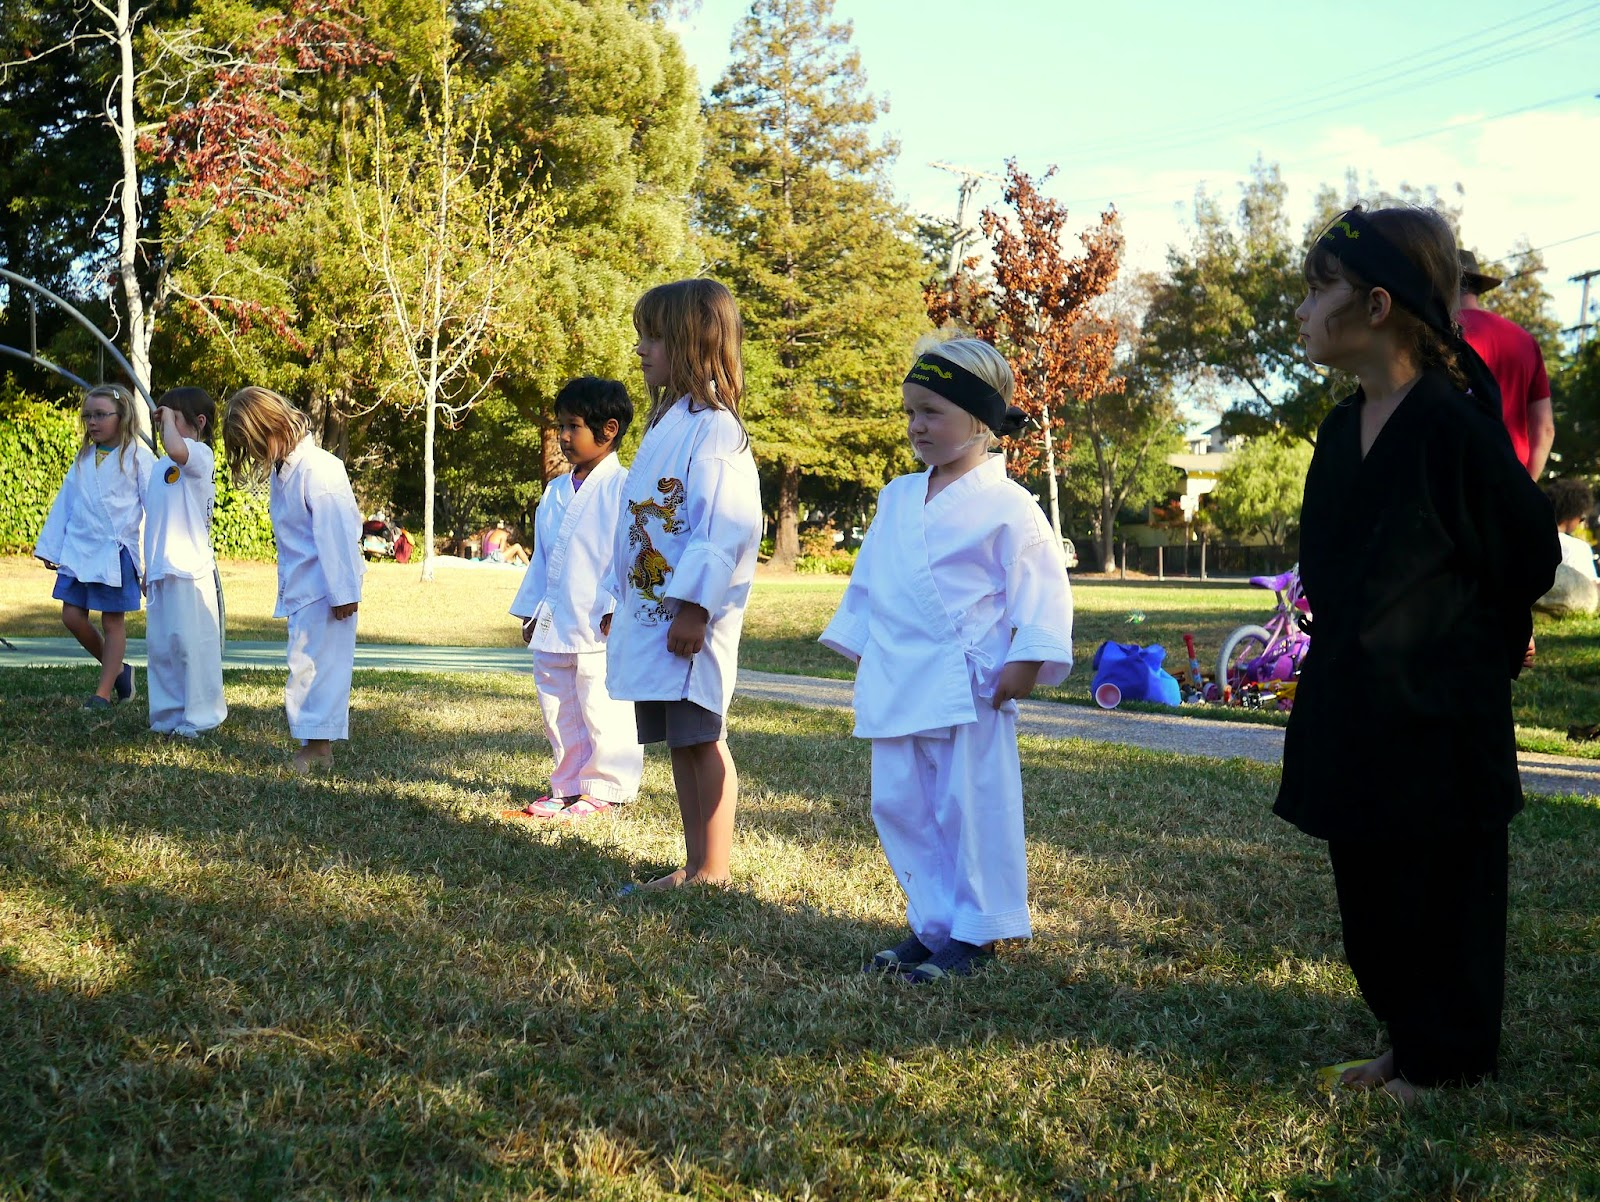 the girls did most of their test together even though they were working towards different belts